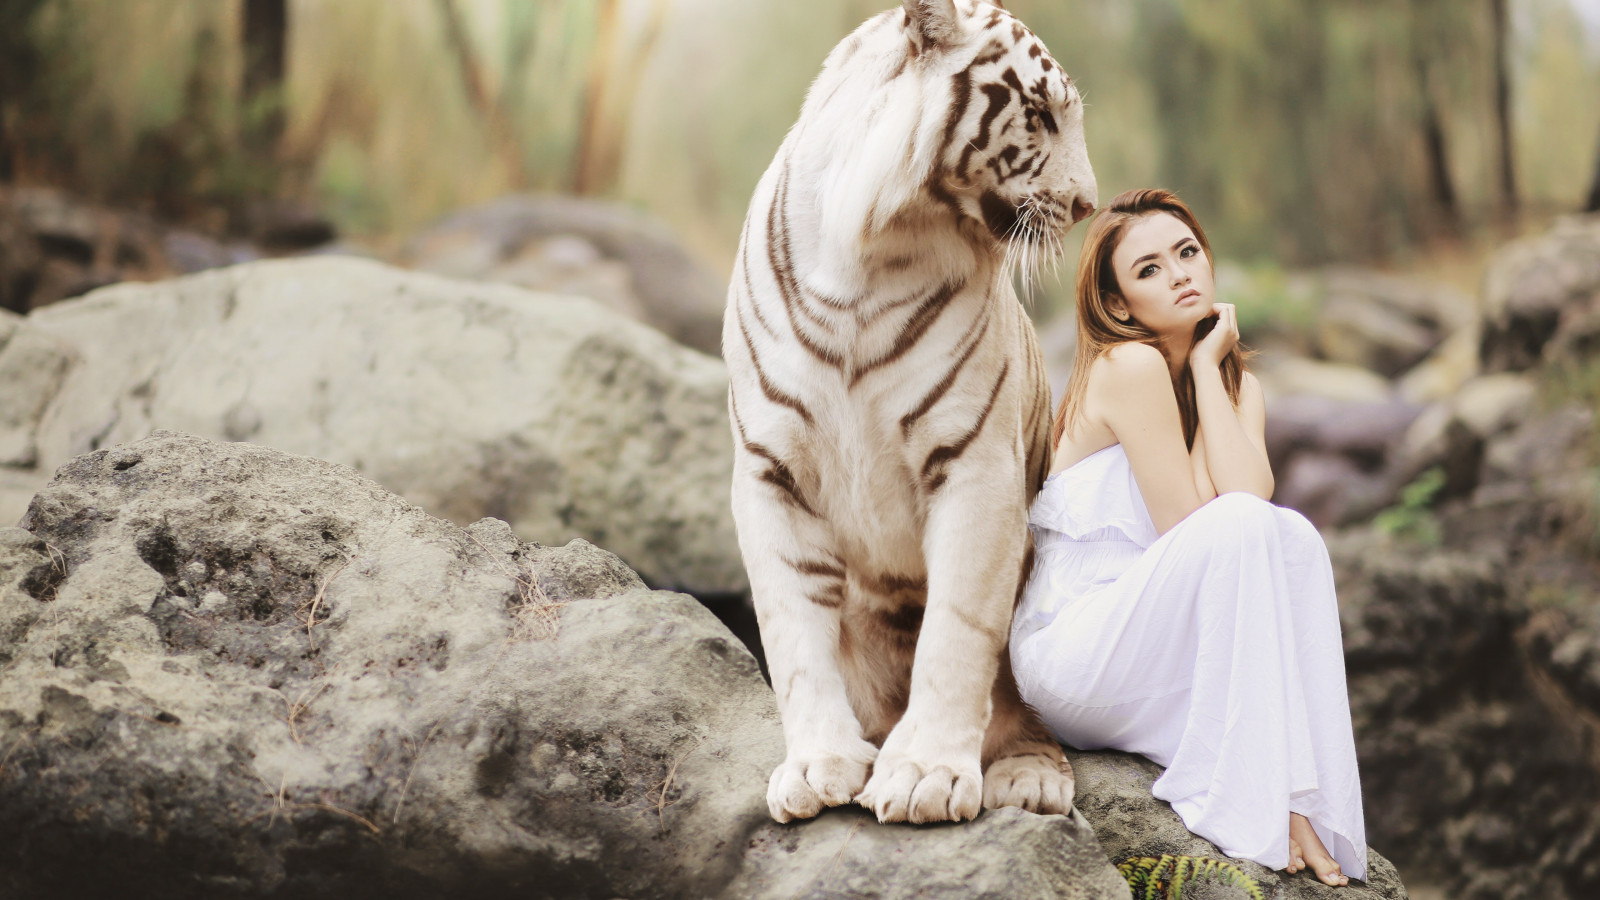 Bengal tiger and a beautiful girl | 1600x900 wallpaper